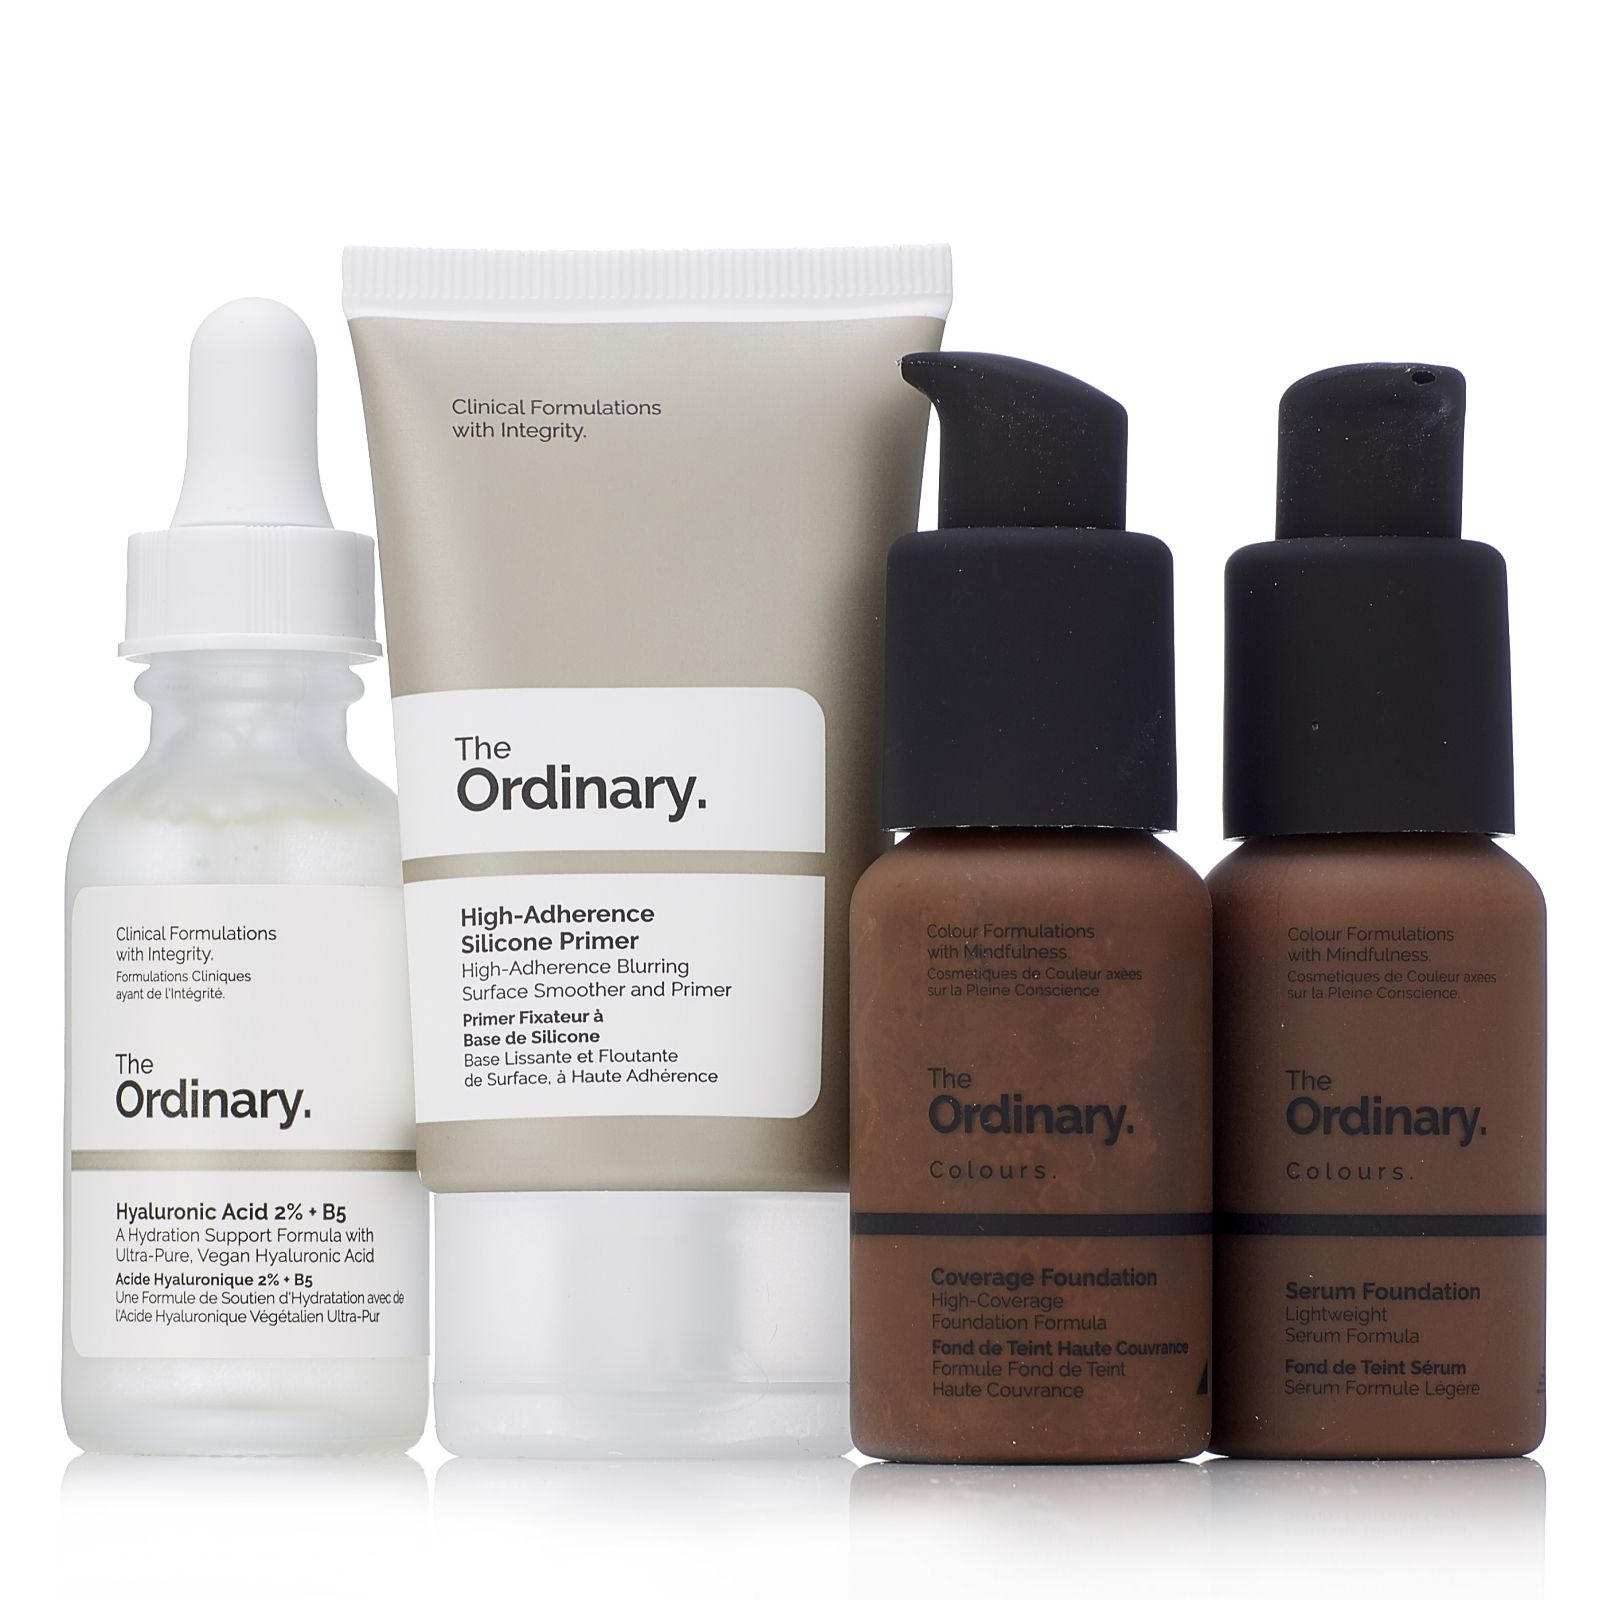 991b820c3a3 The Ordinary 4 Piece Foundation Collection - QVC UK